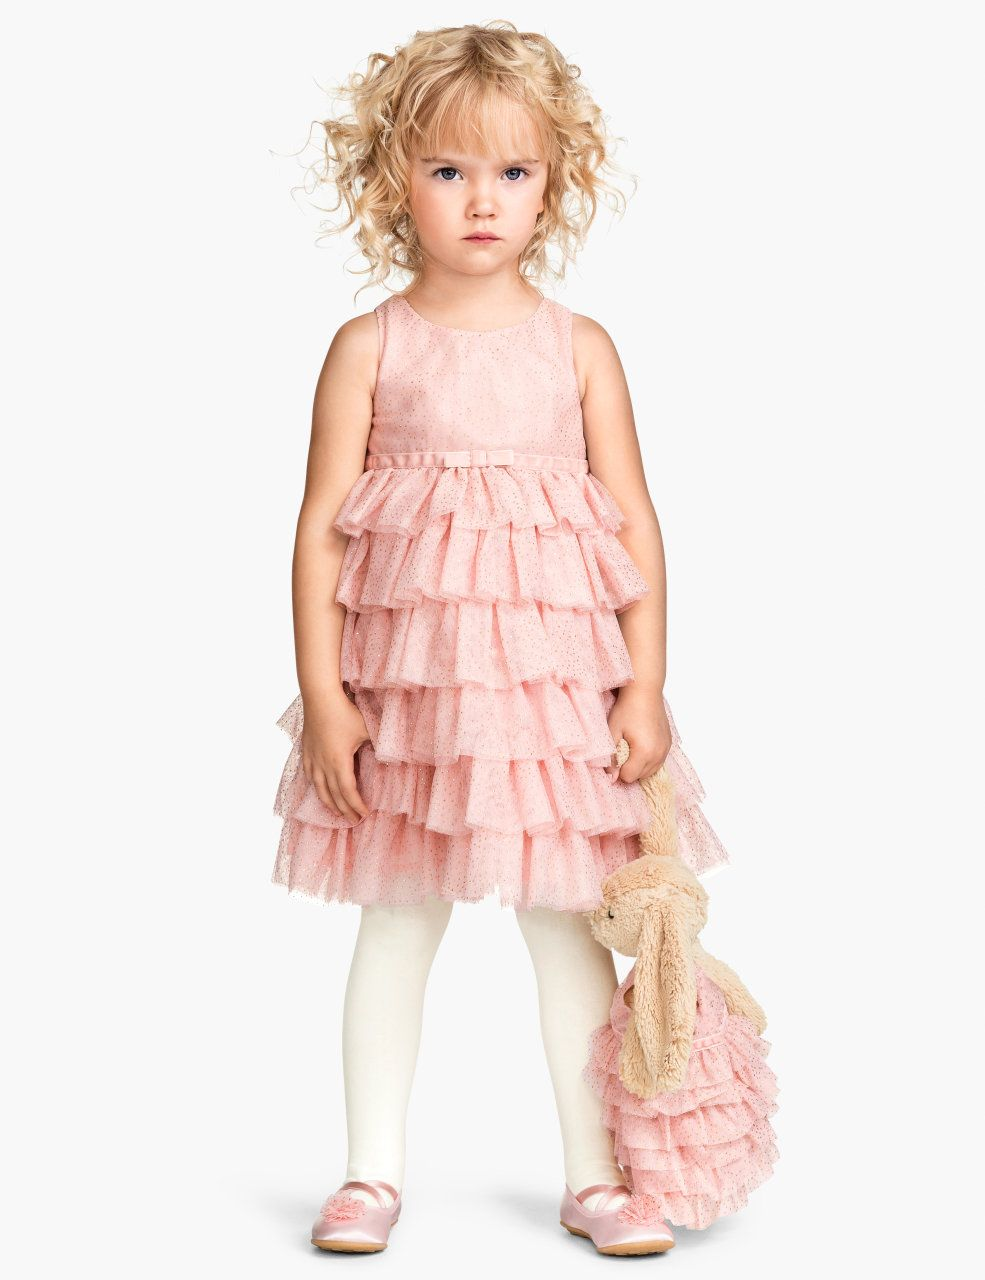 58cb8f7217b0 H&M - Little Girls Pink Dress Once Upon A Time Collection | Dresses ...